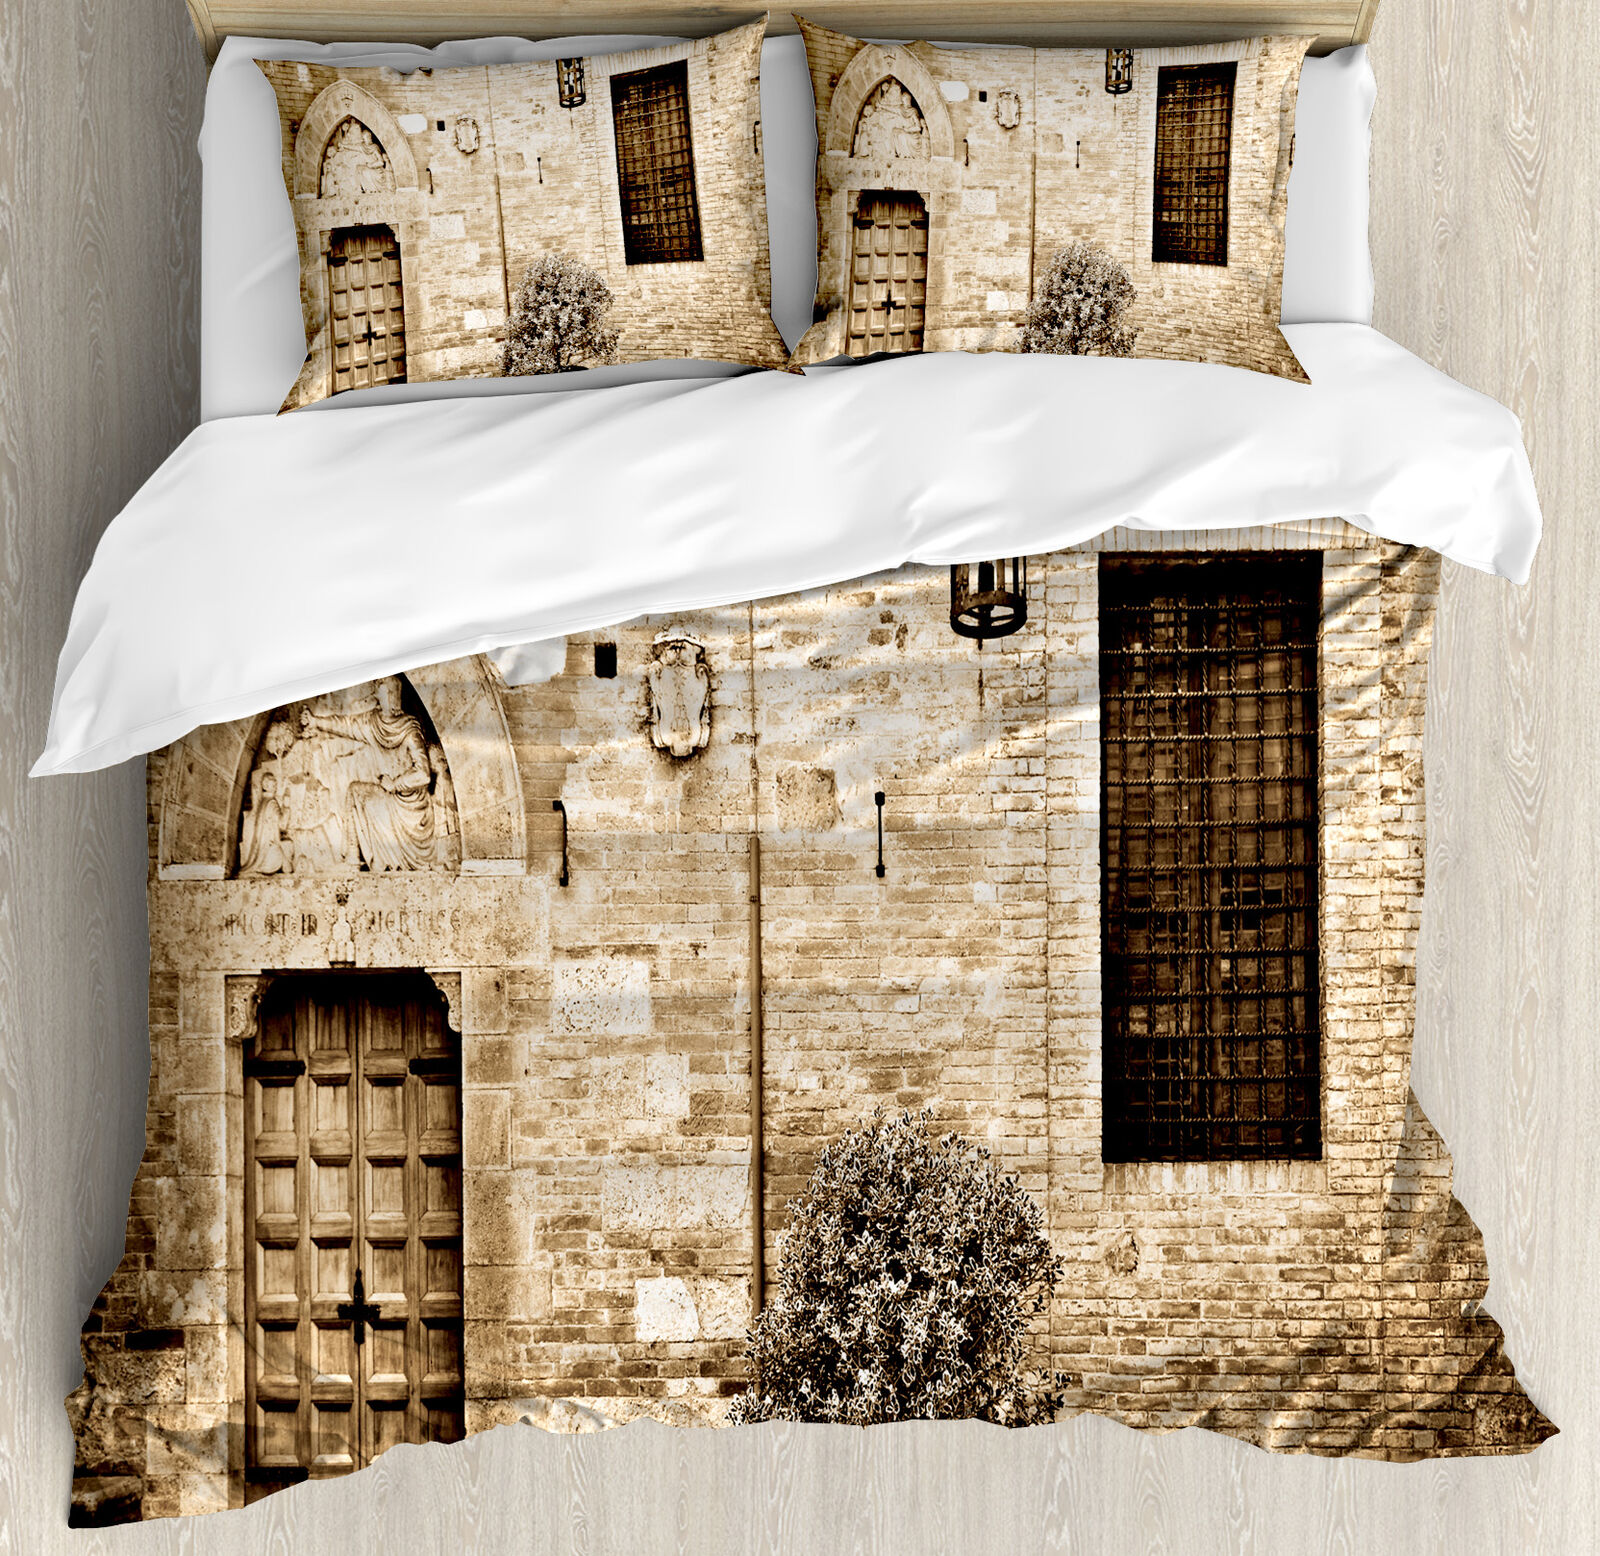 Rustic King Dimensione Duvet Cover Set Stone House Sepia View with 2 Pillow Shams